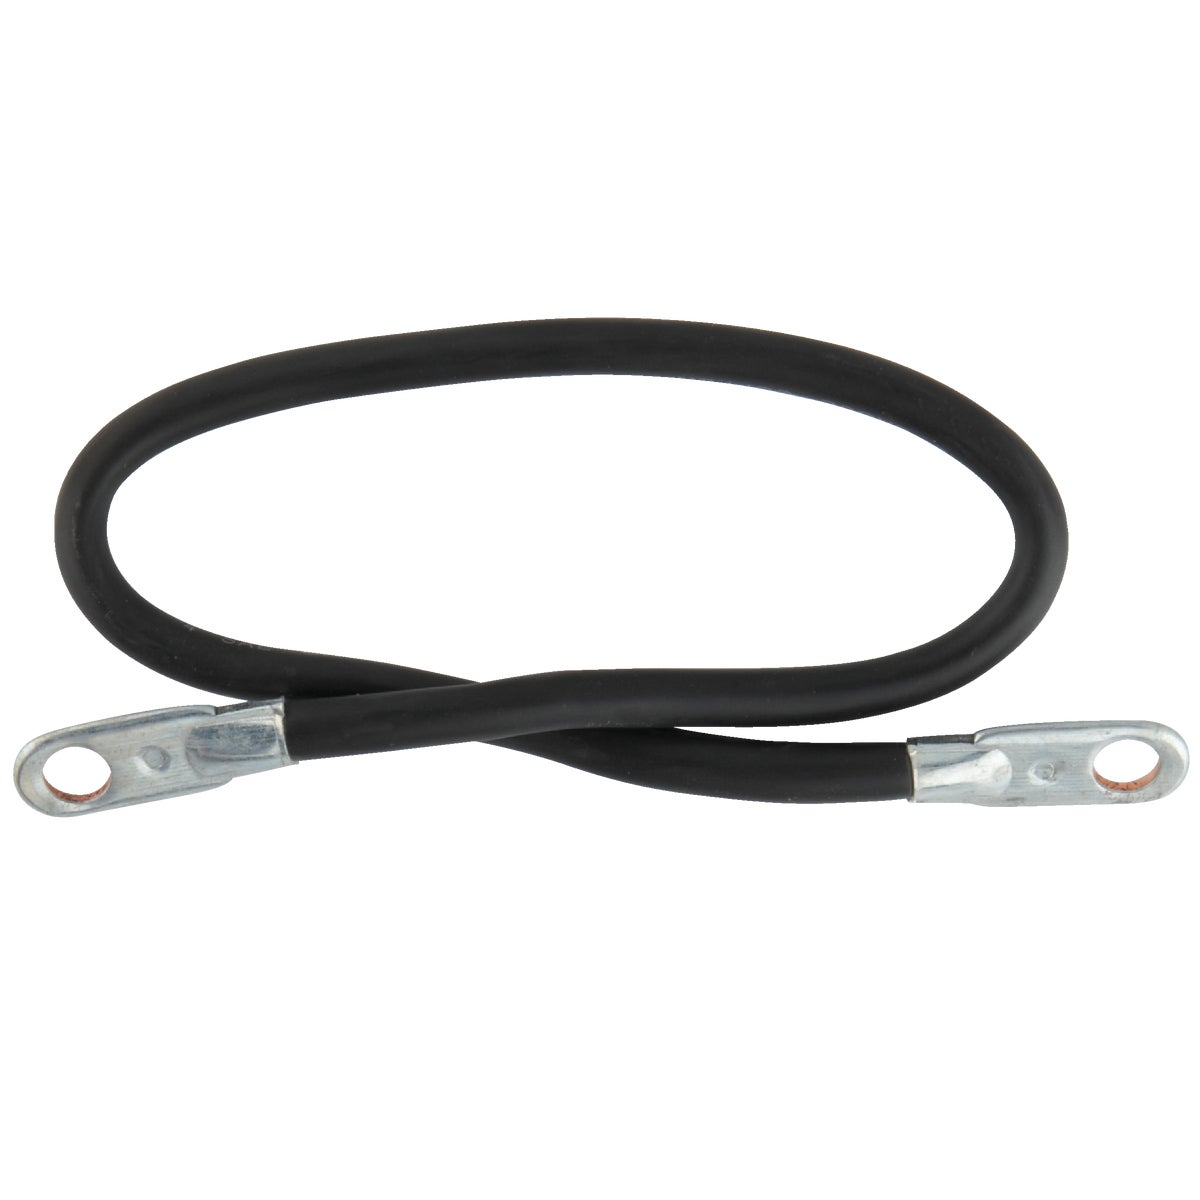 "19"" 4G S/S BATTERY CABLE - SS19-4 by Woods Wire Coleman"